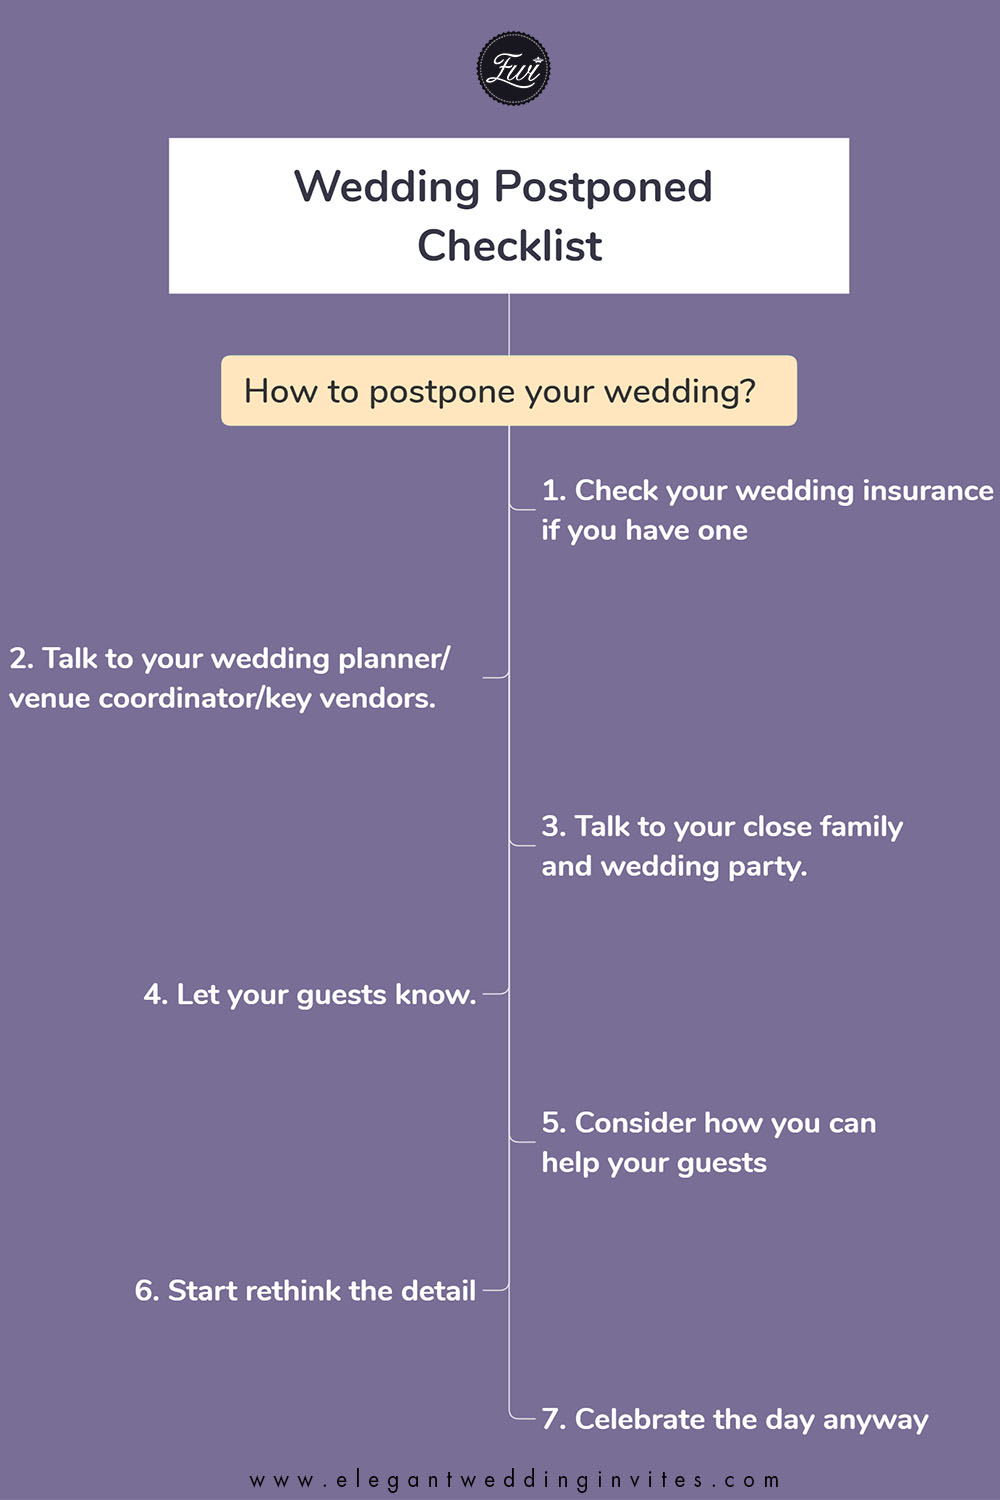 Issues to Consider When Postponing Your Wedding